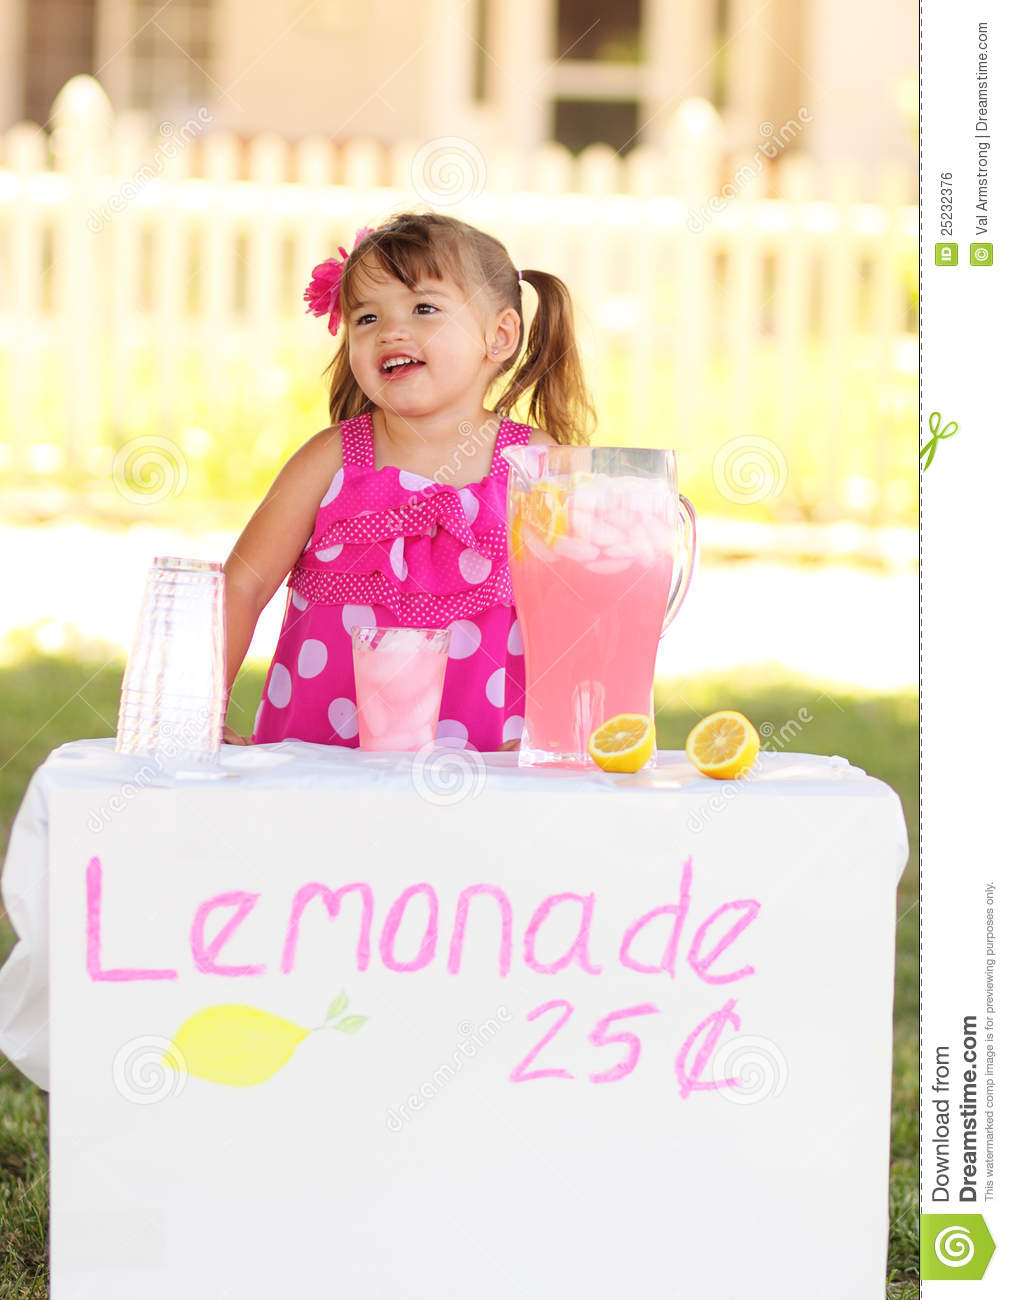 Lemonade Stand Open for Business